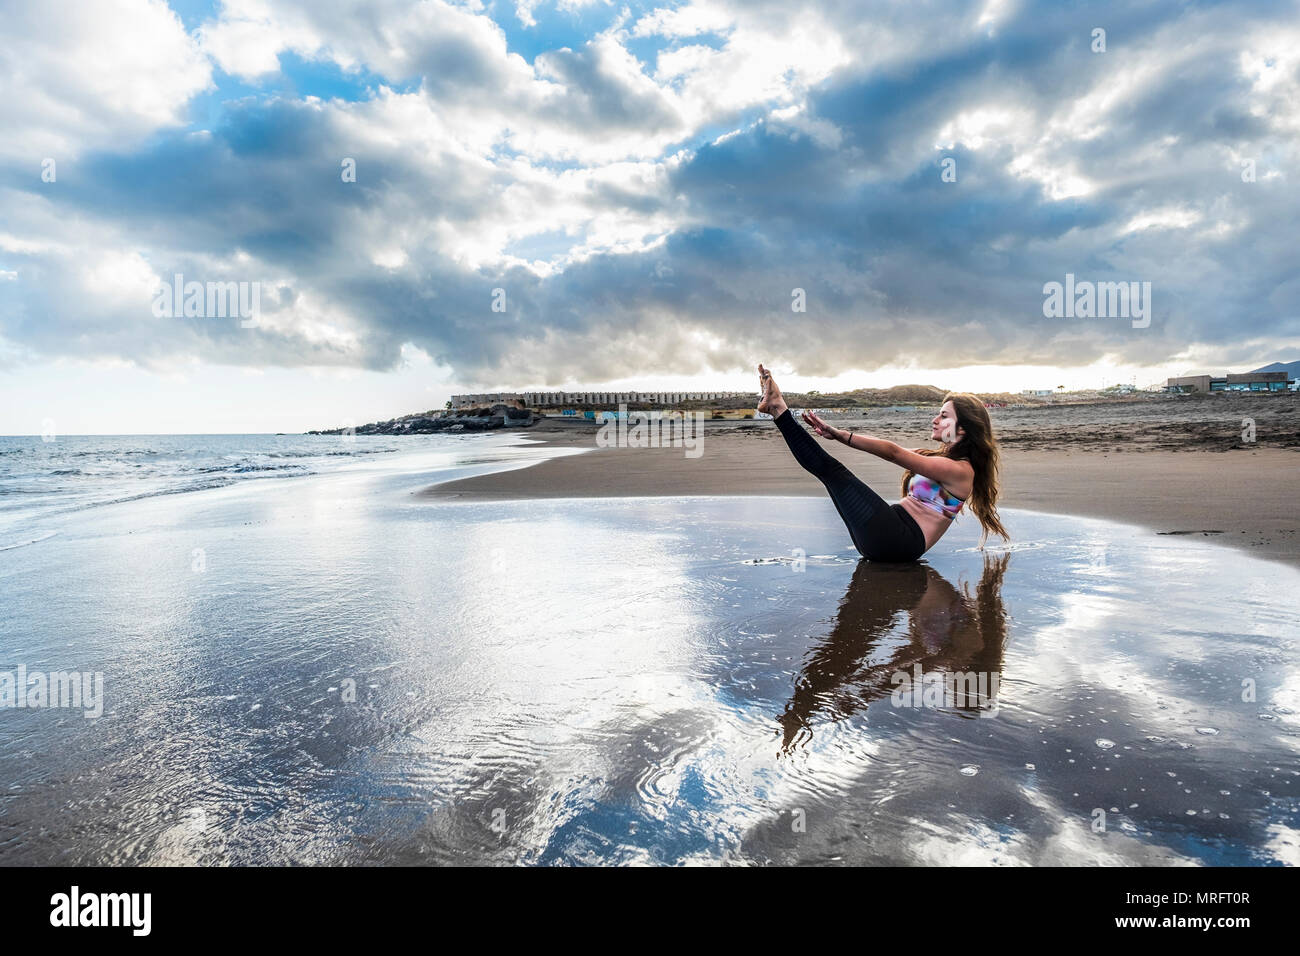 pilates fitness have care of body rest and stay position for young caucasian woman on the shore at the beach. scenic image for body health concept. yo - Stock Image